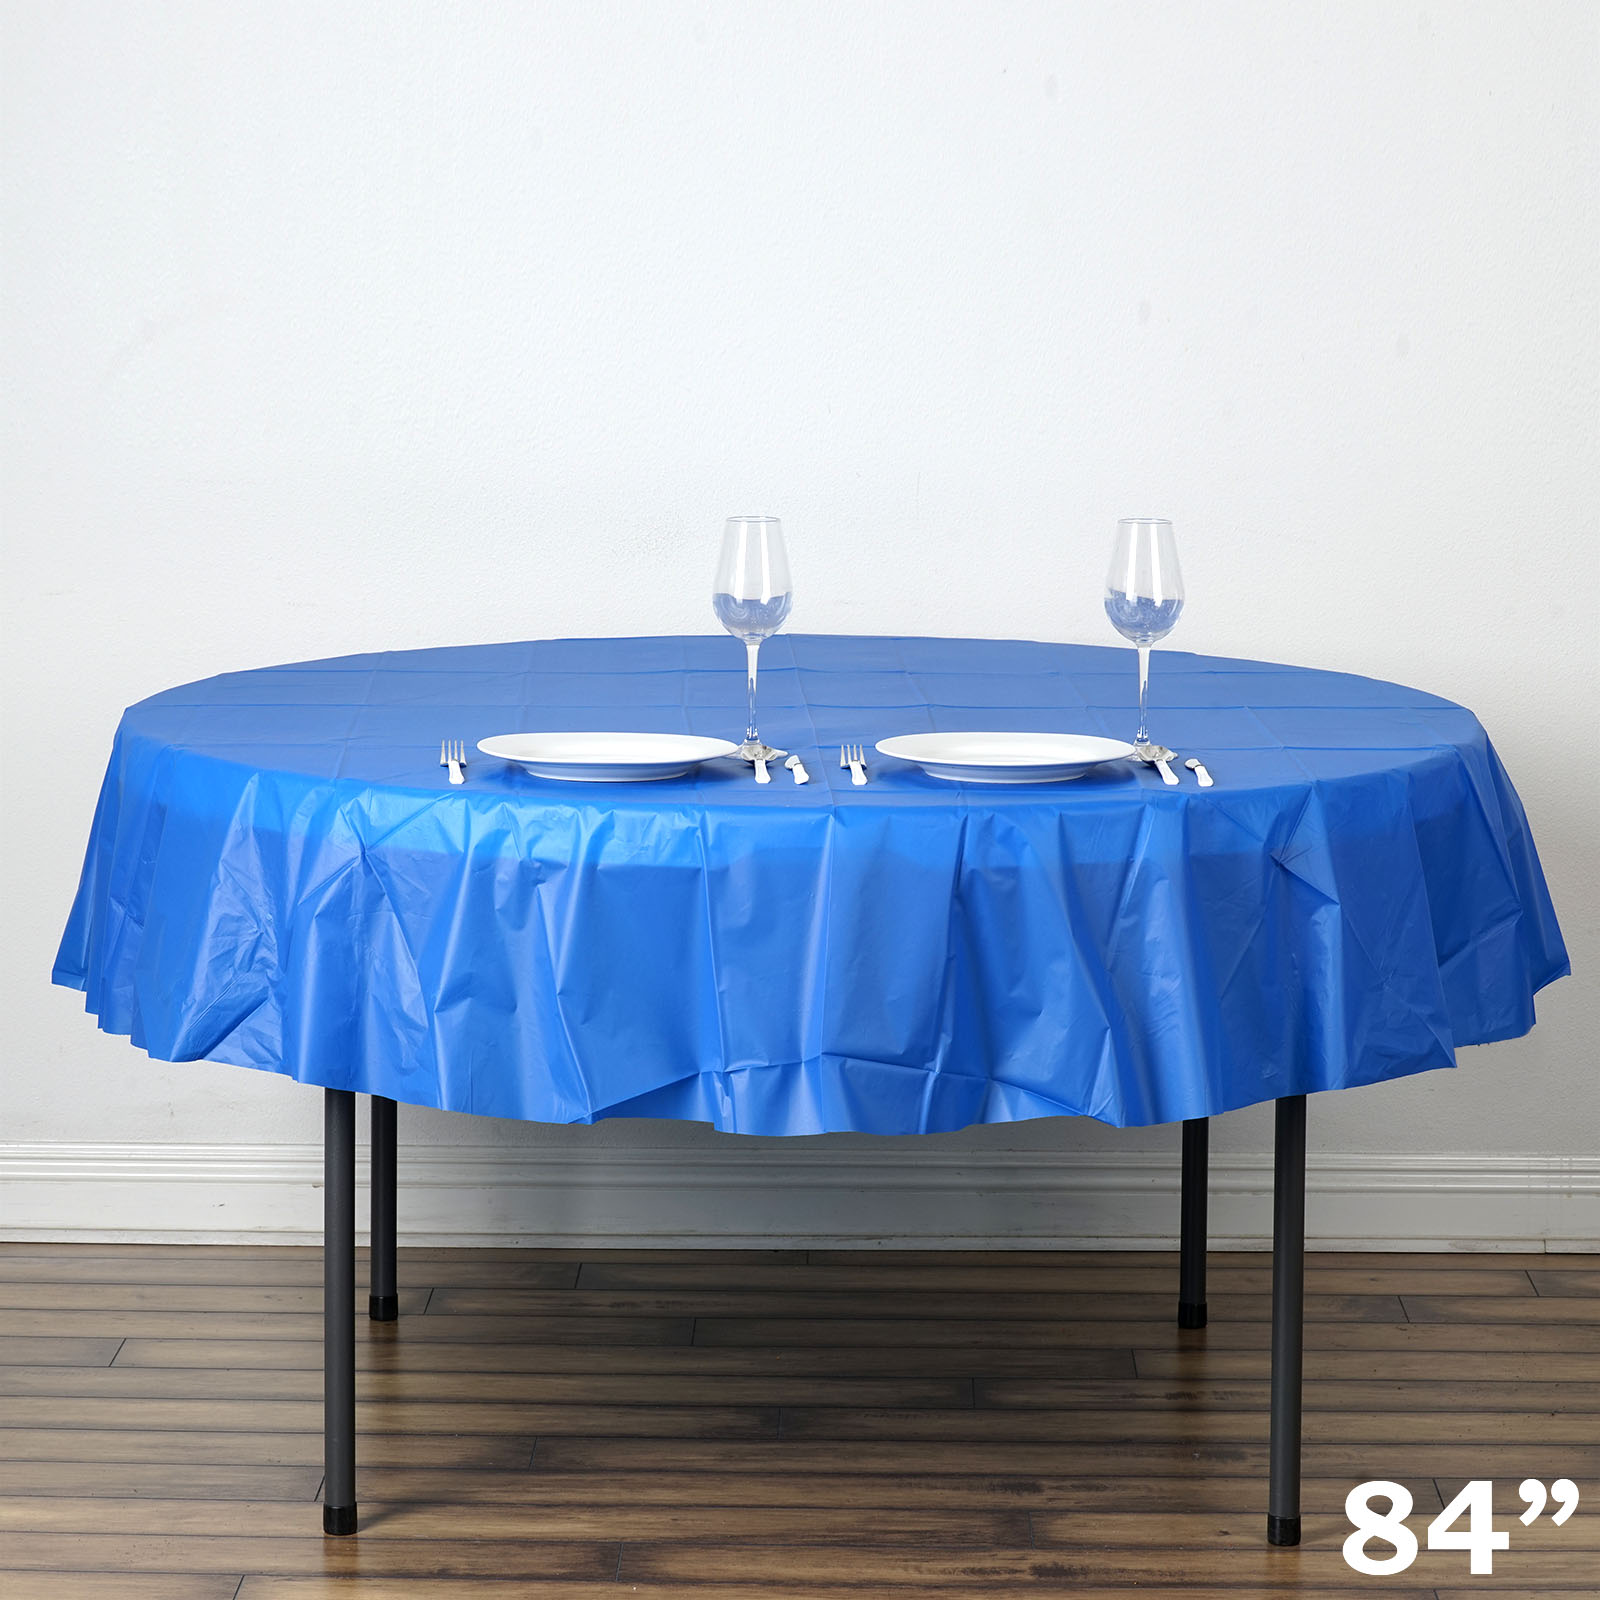 Balsacircle 84 Round Disposable Plastic Tablecloth Table Cover Party Picnic Covers Decorations